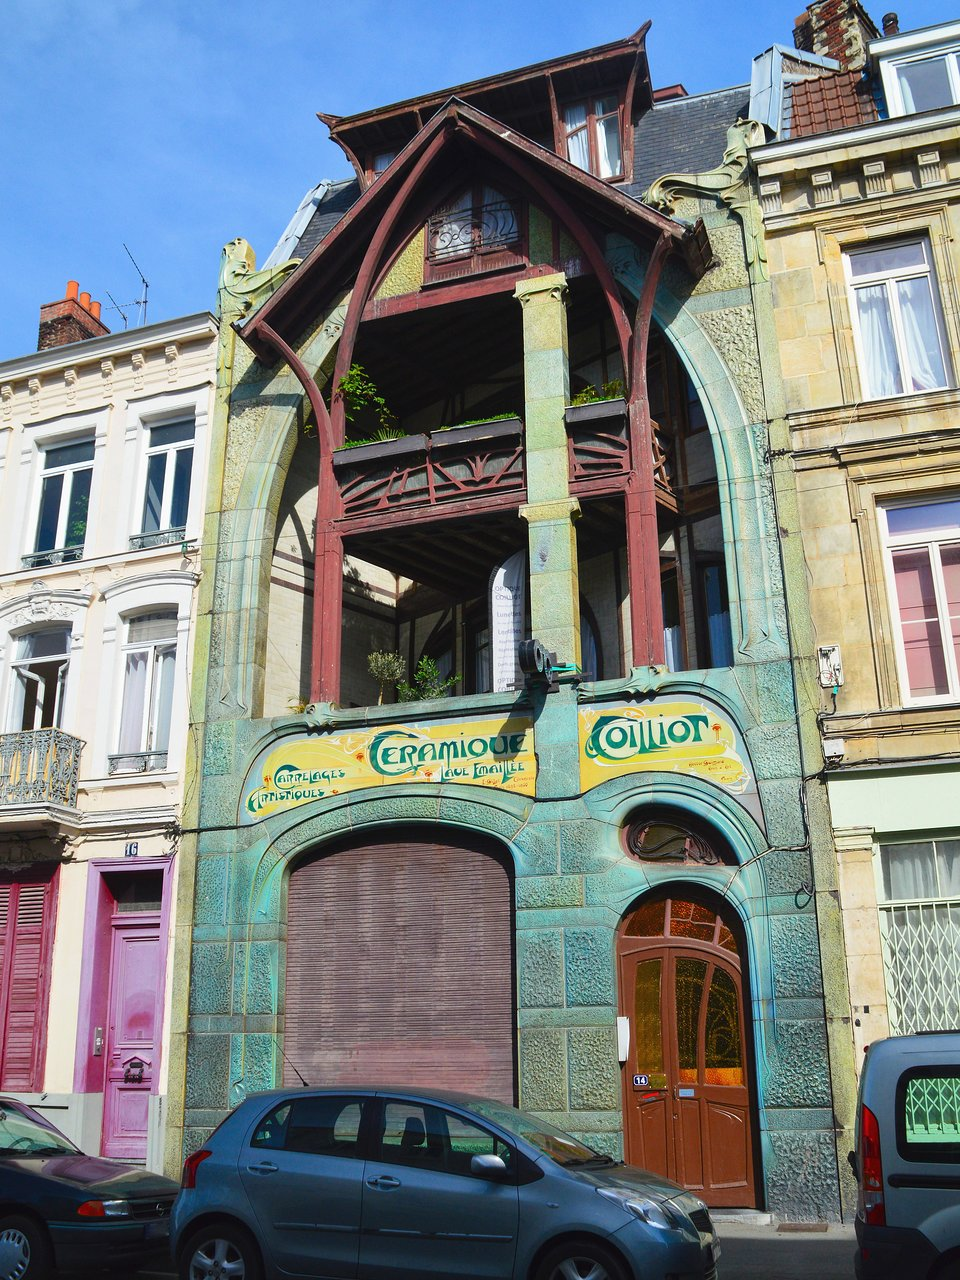 Maison Du Convertible Sebastopol maison coilliot (lille) - 2020 all you need to know before